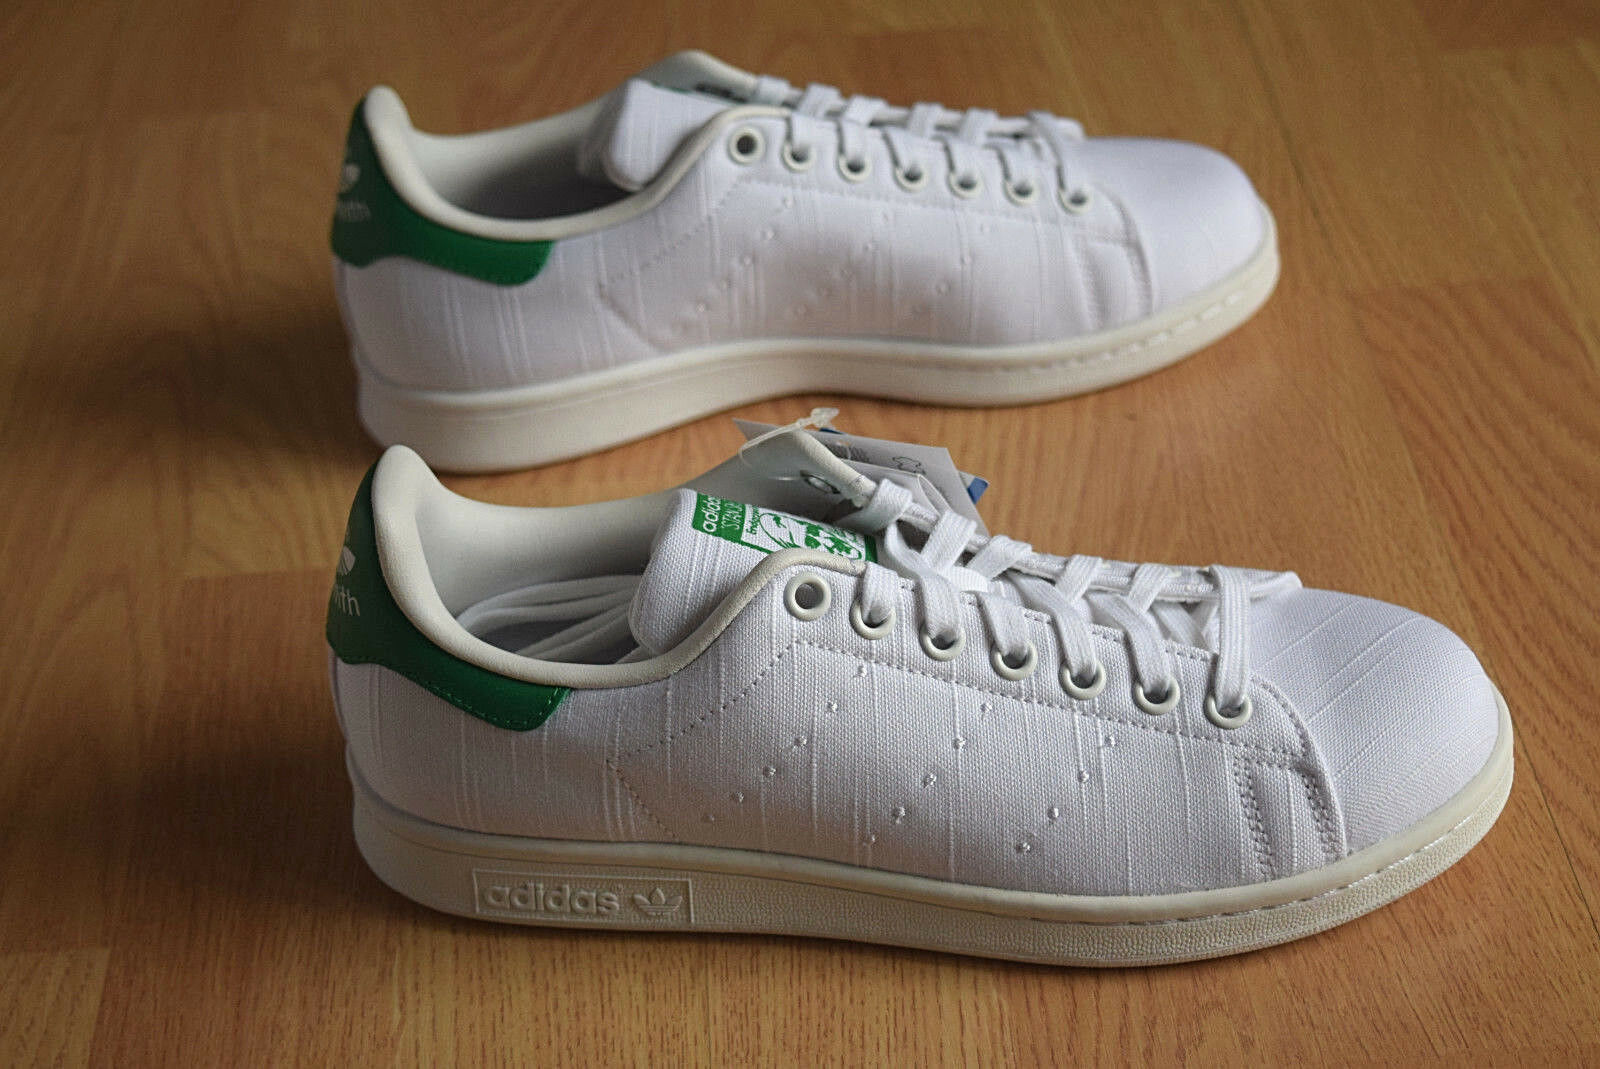 Adidas Stan Smith W 36,5 38 38,5 canvas s75560 gacela Superstar campus Bold